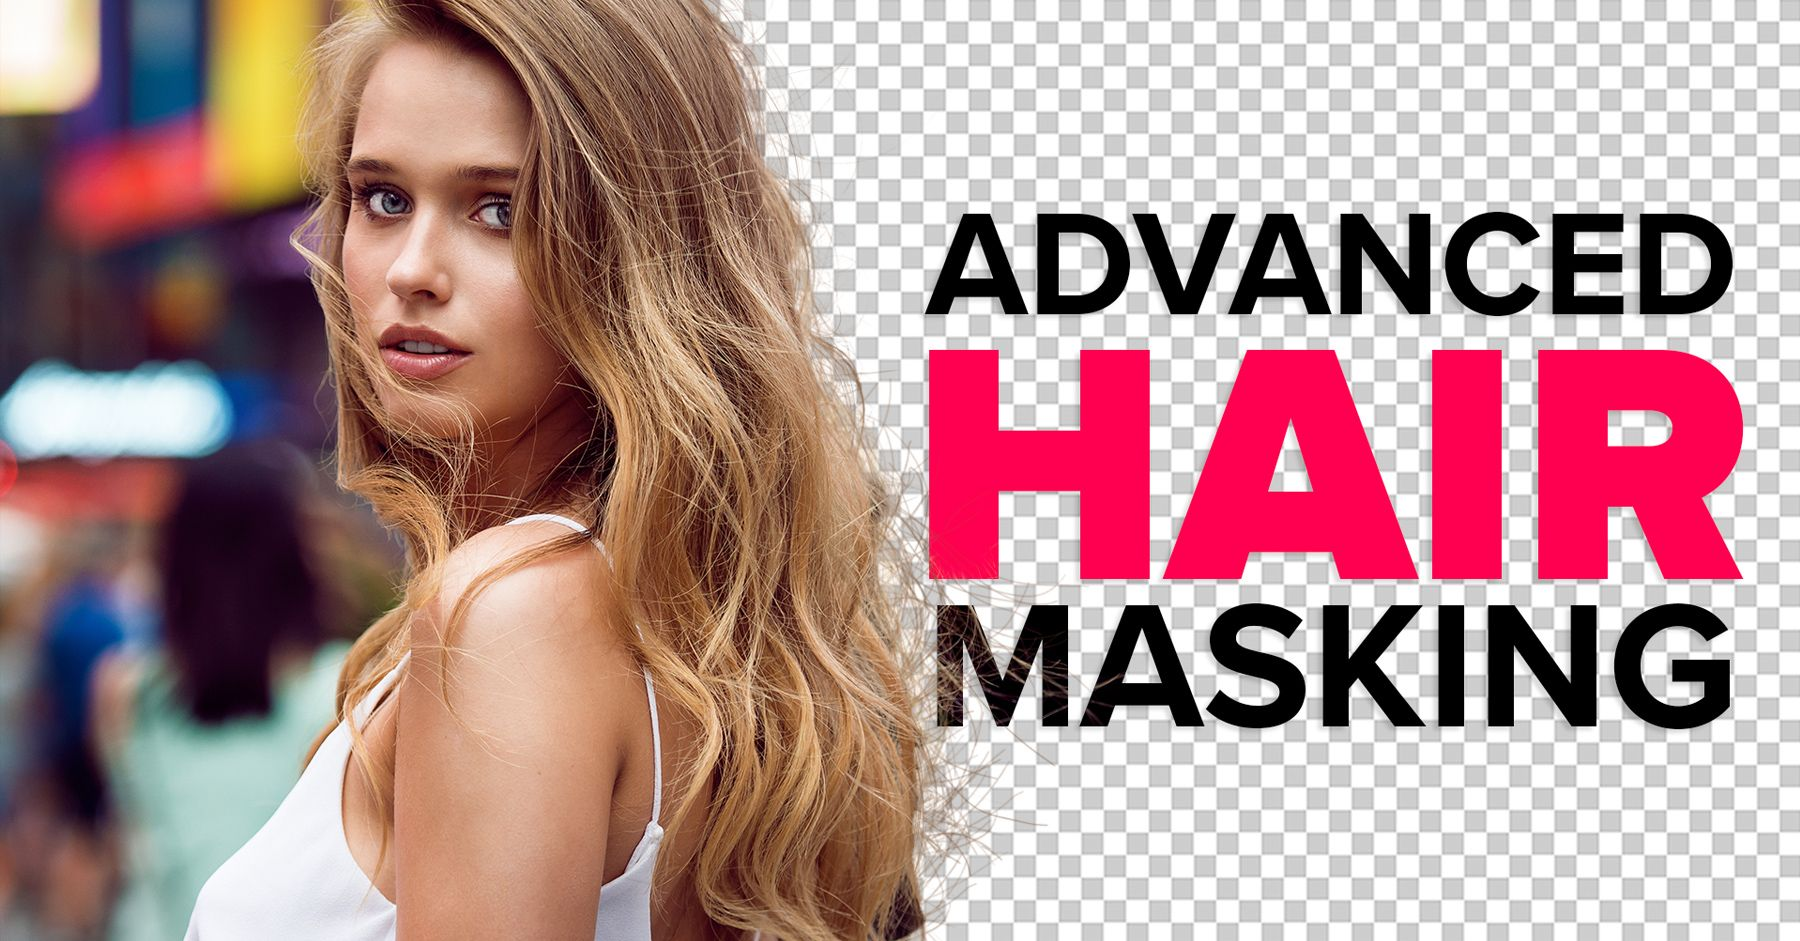 Advanced hair masking in with busy backgrounds